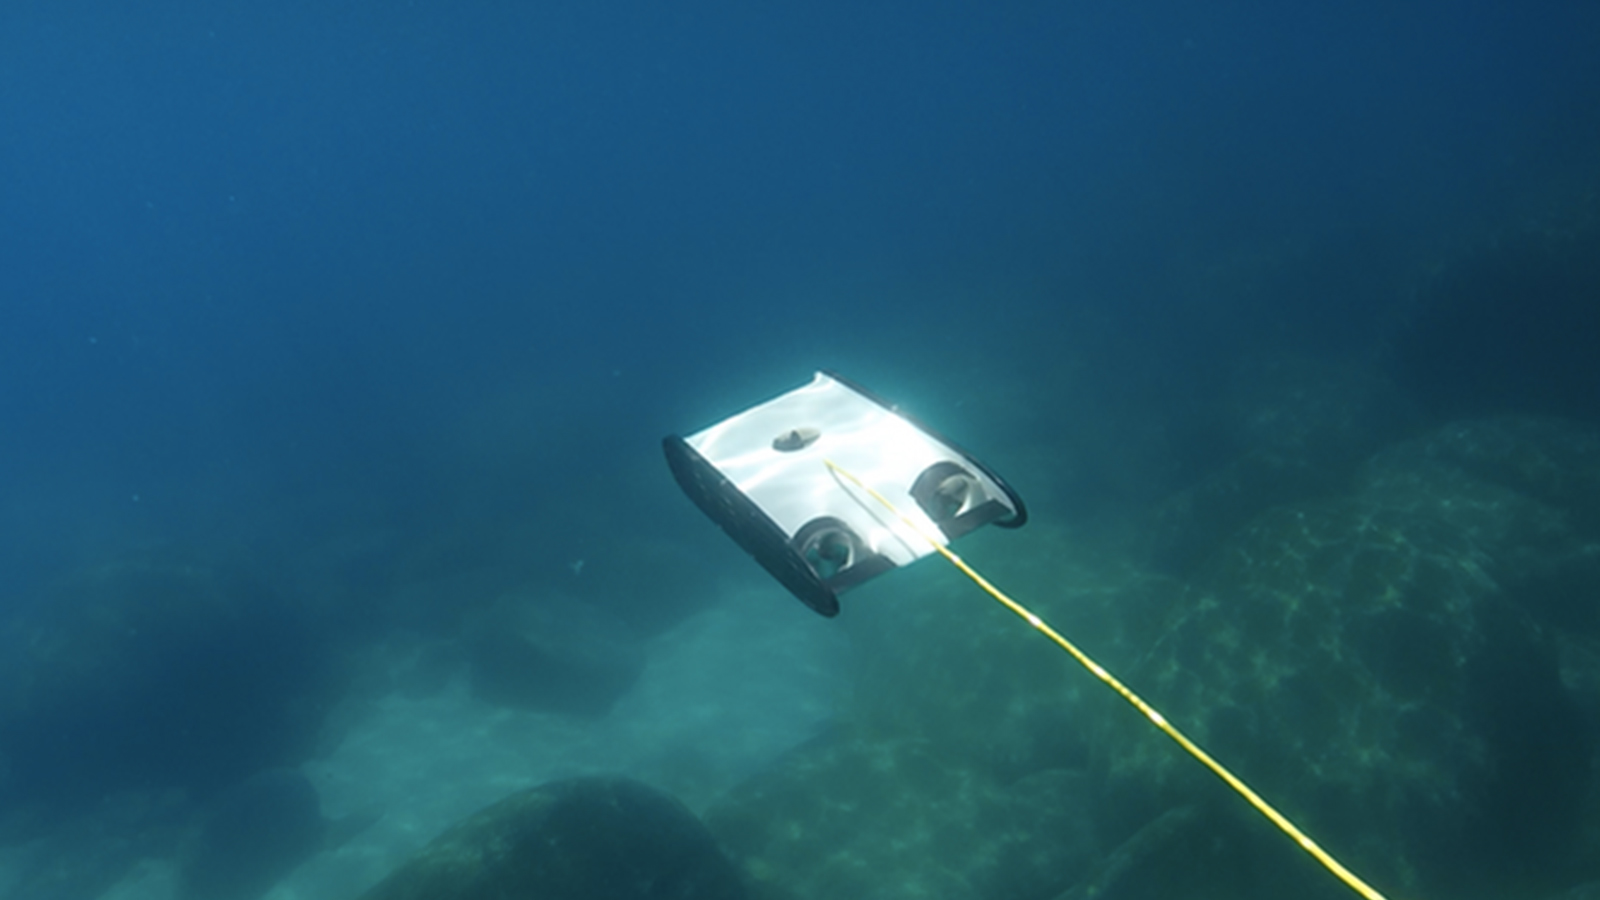 drone with hd camera with Openrov Trident Underwater Drone Kickstarter on 32801474227 furthermore Openrov Trident Underwater Drone Kickstarter furthermore Drone Saint Malo likewise Bahias De Huatulco 8 furthermore Best Budget Drones.